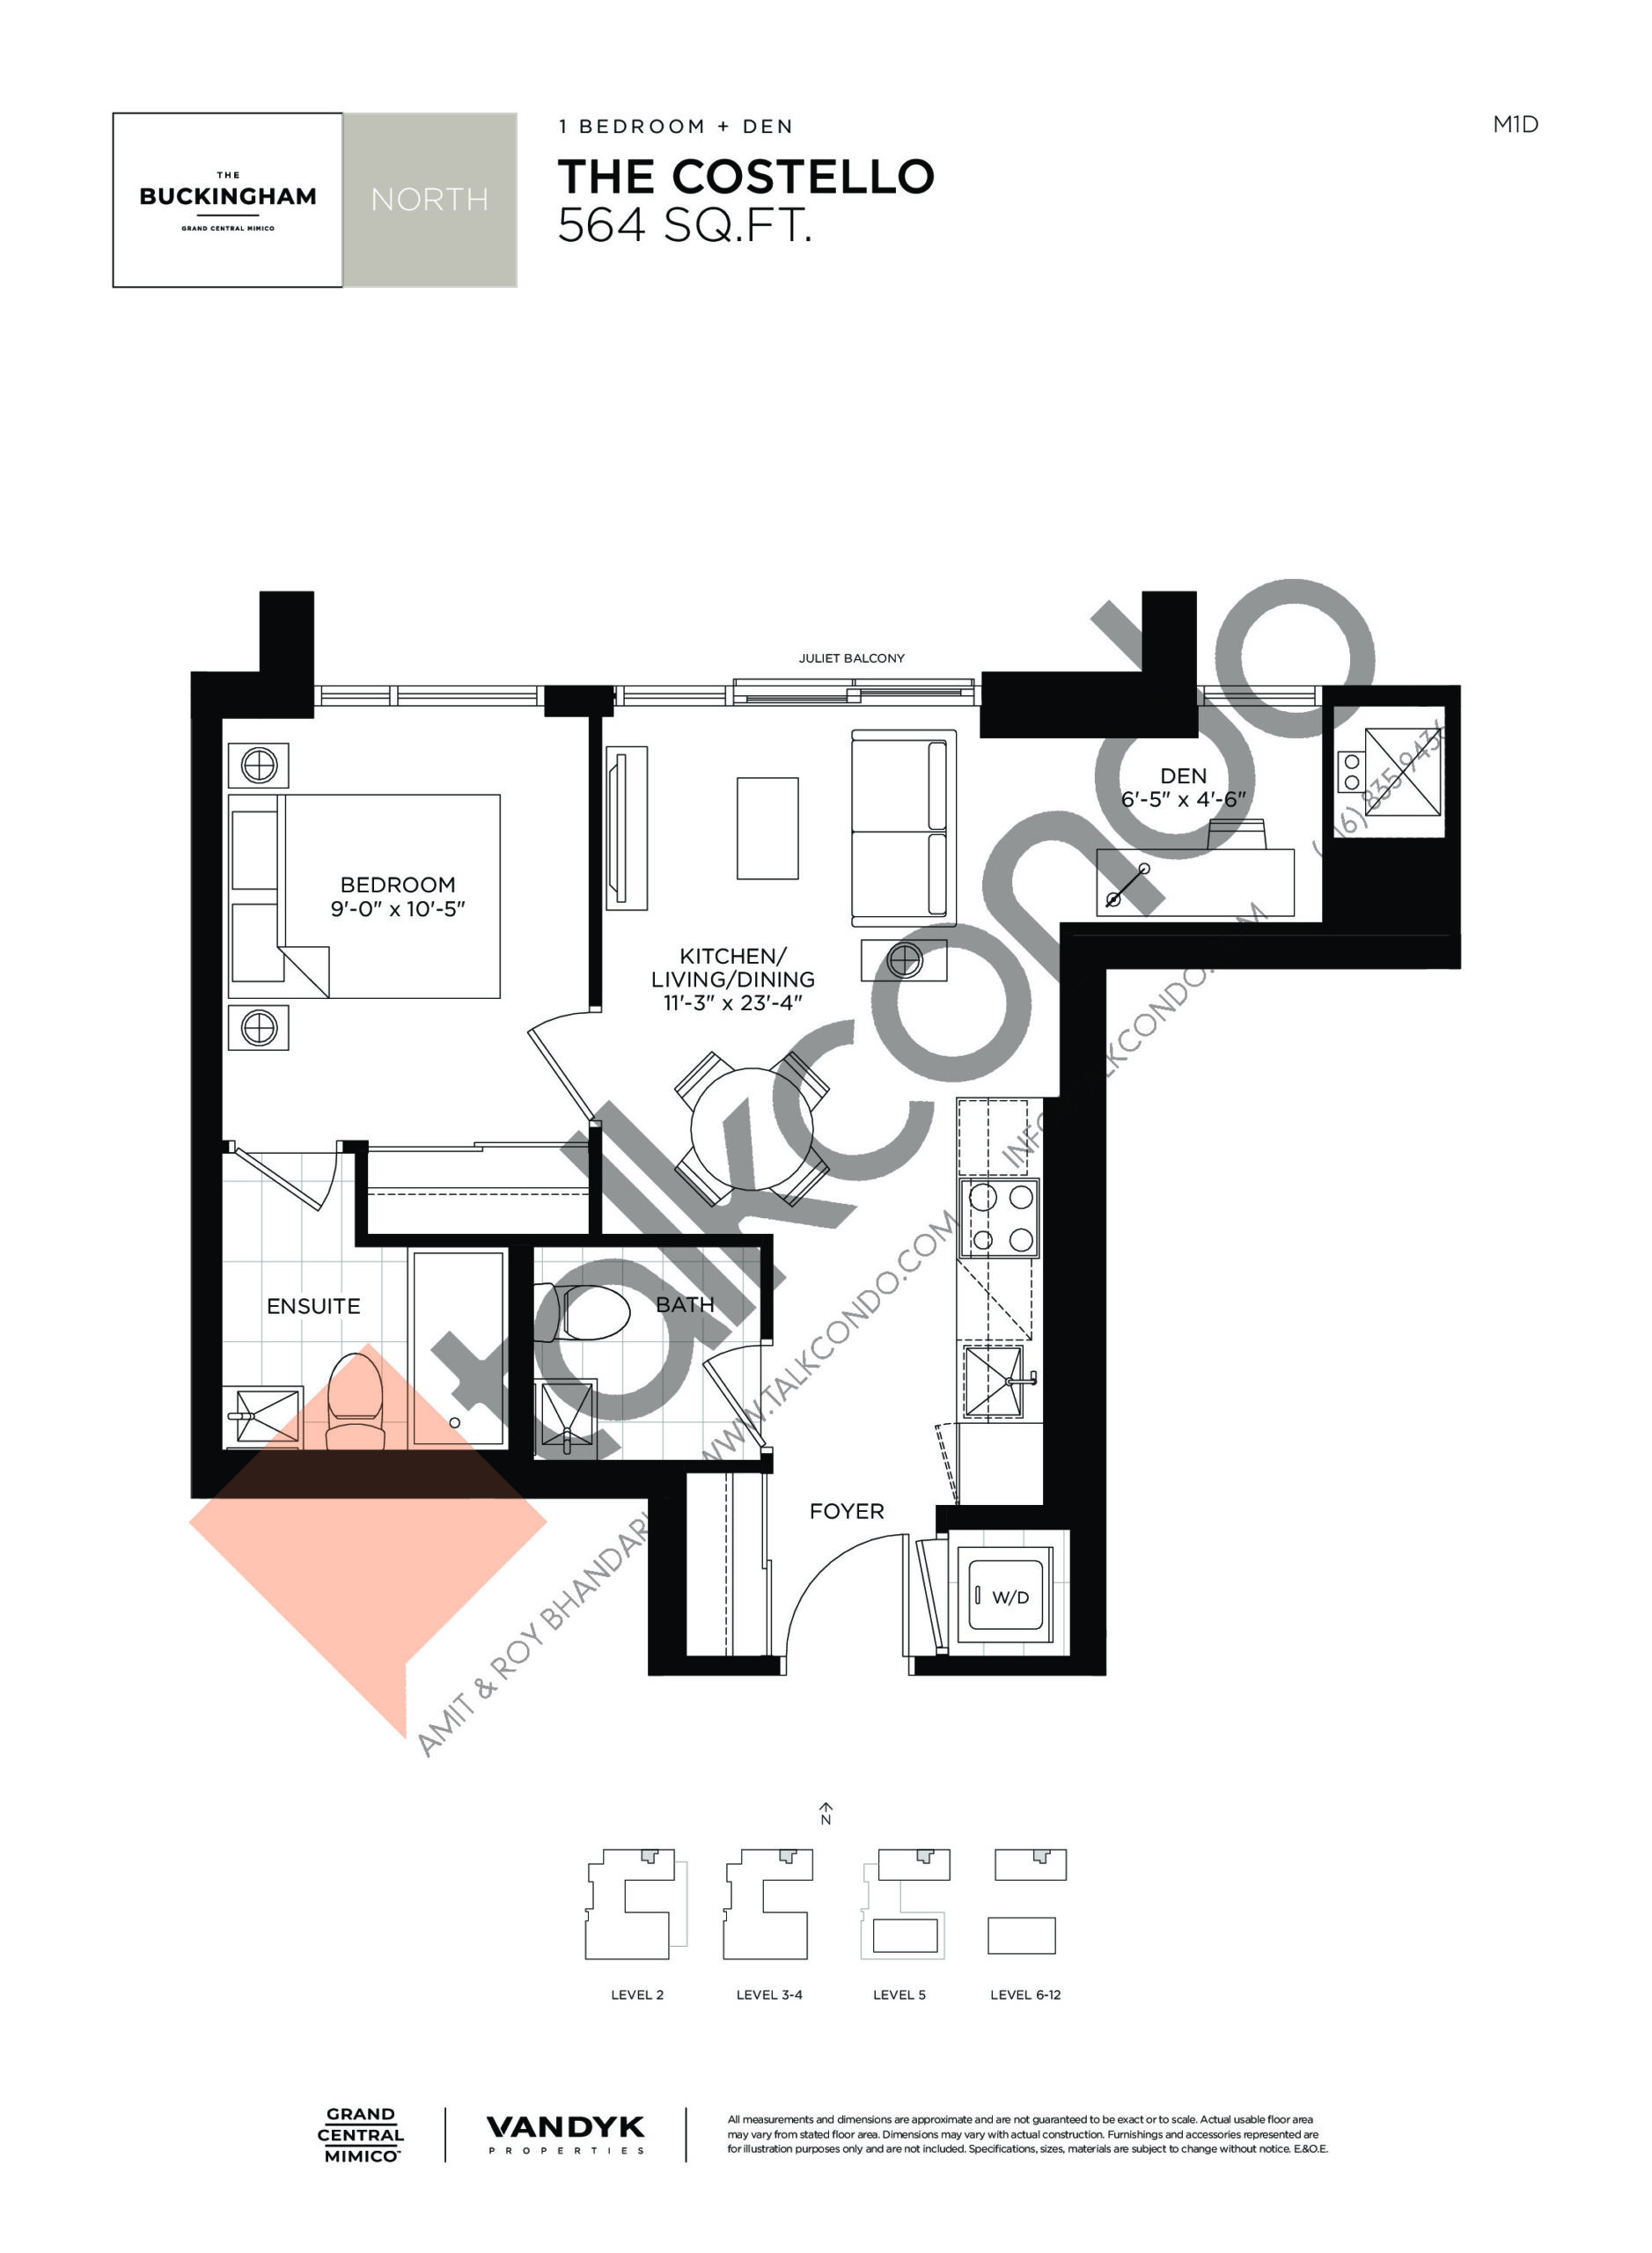 The Costello Floor Plan at Grand Central Mimico Condos - 564 sq.ft